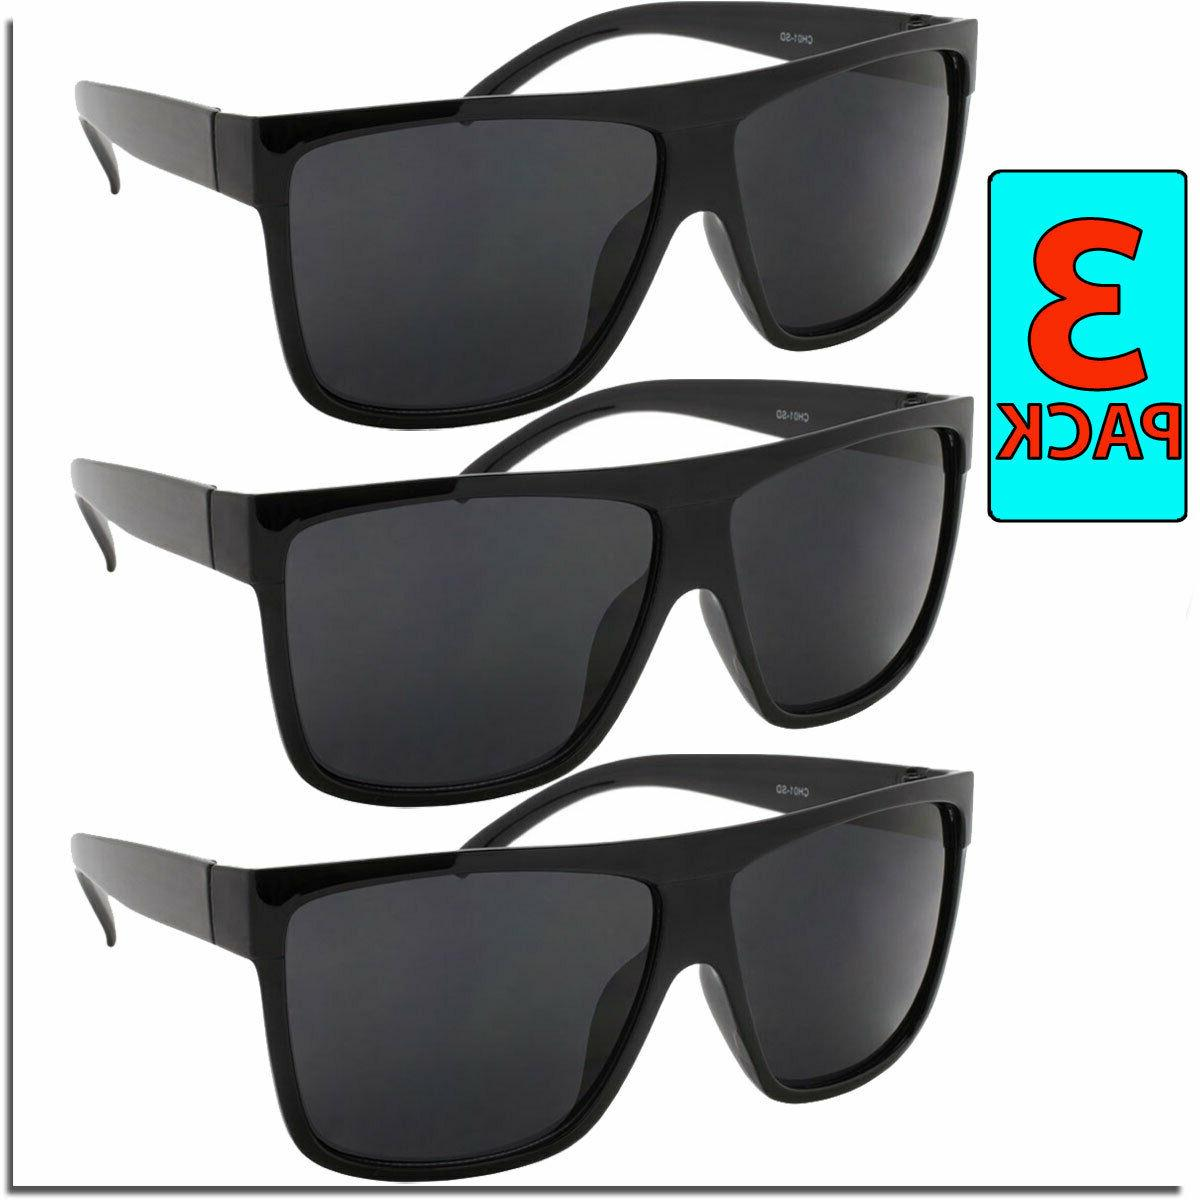 OG Sunglasses Mens Flat Top All Black Style Sunglass 3 PACK